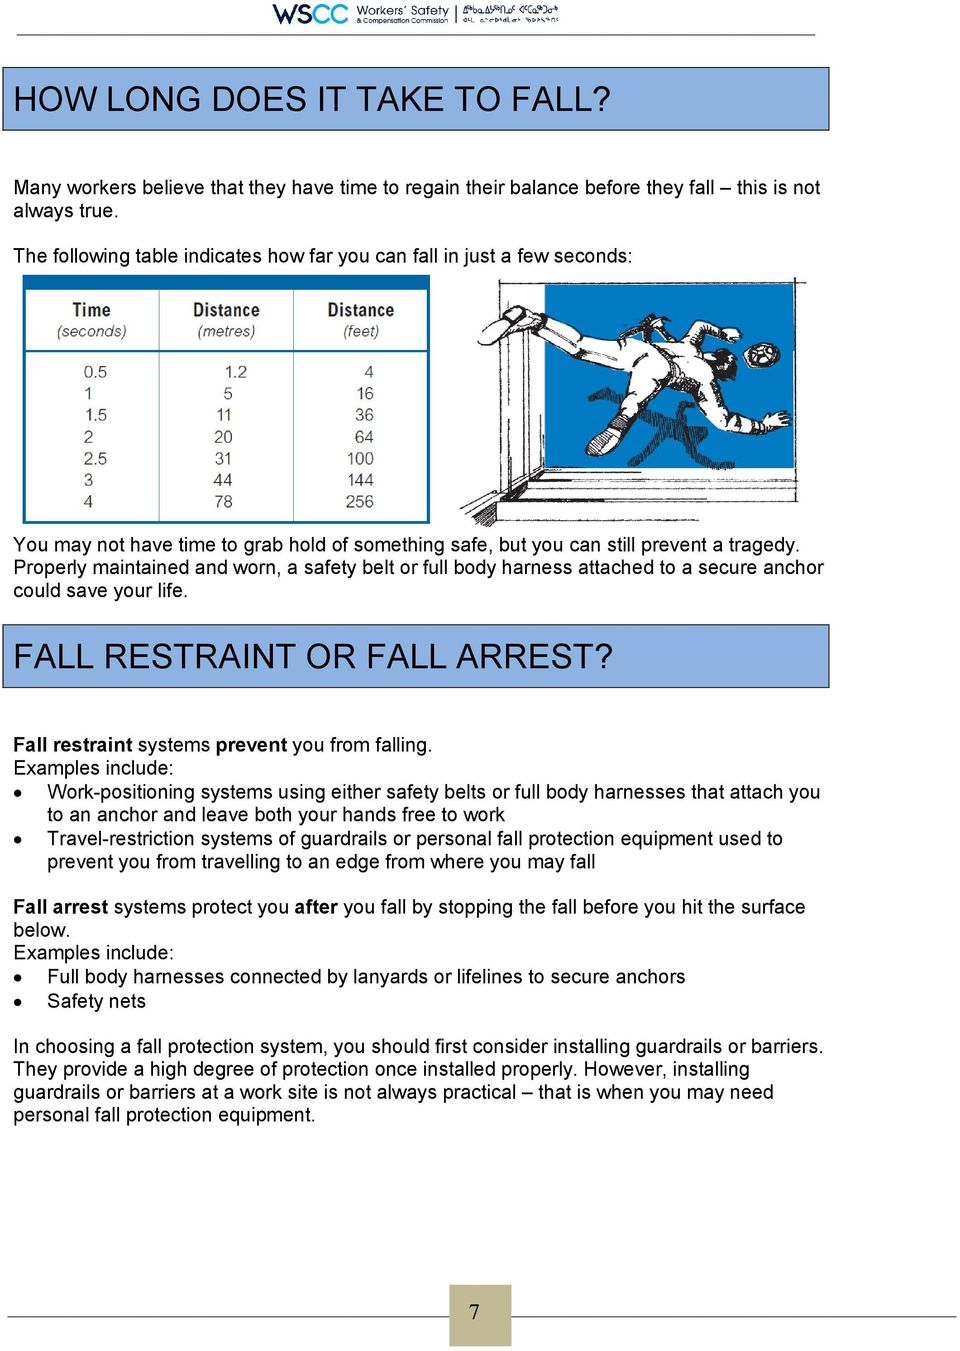 Properly maintained and worn, a safety belt or full body harness attached to a secure anchor could save your life. FALL RESTRAINT OR FALL ARREST? Fall restraint systems prevent you from falling.